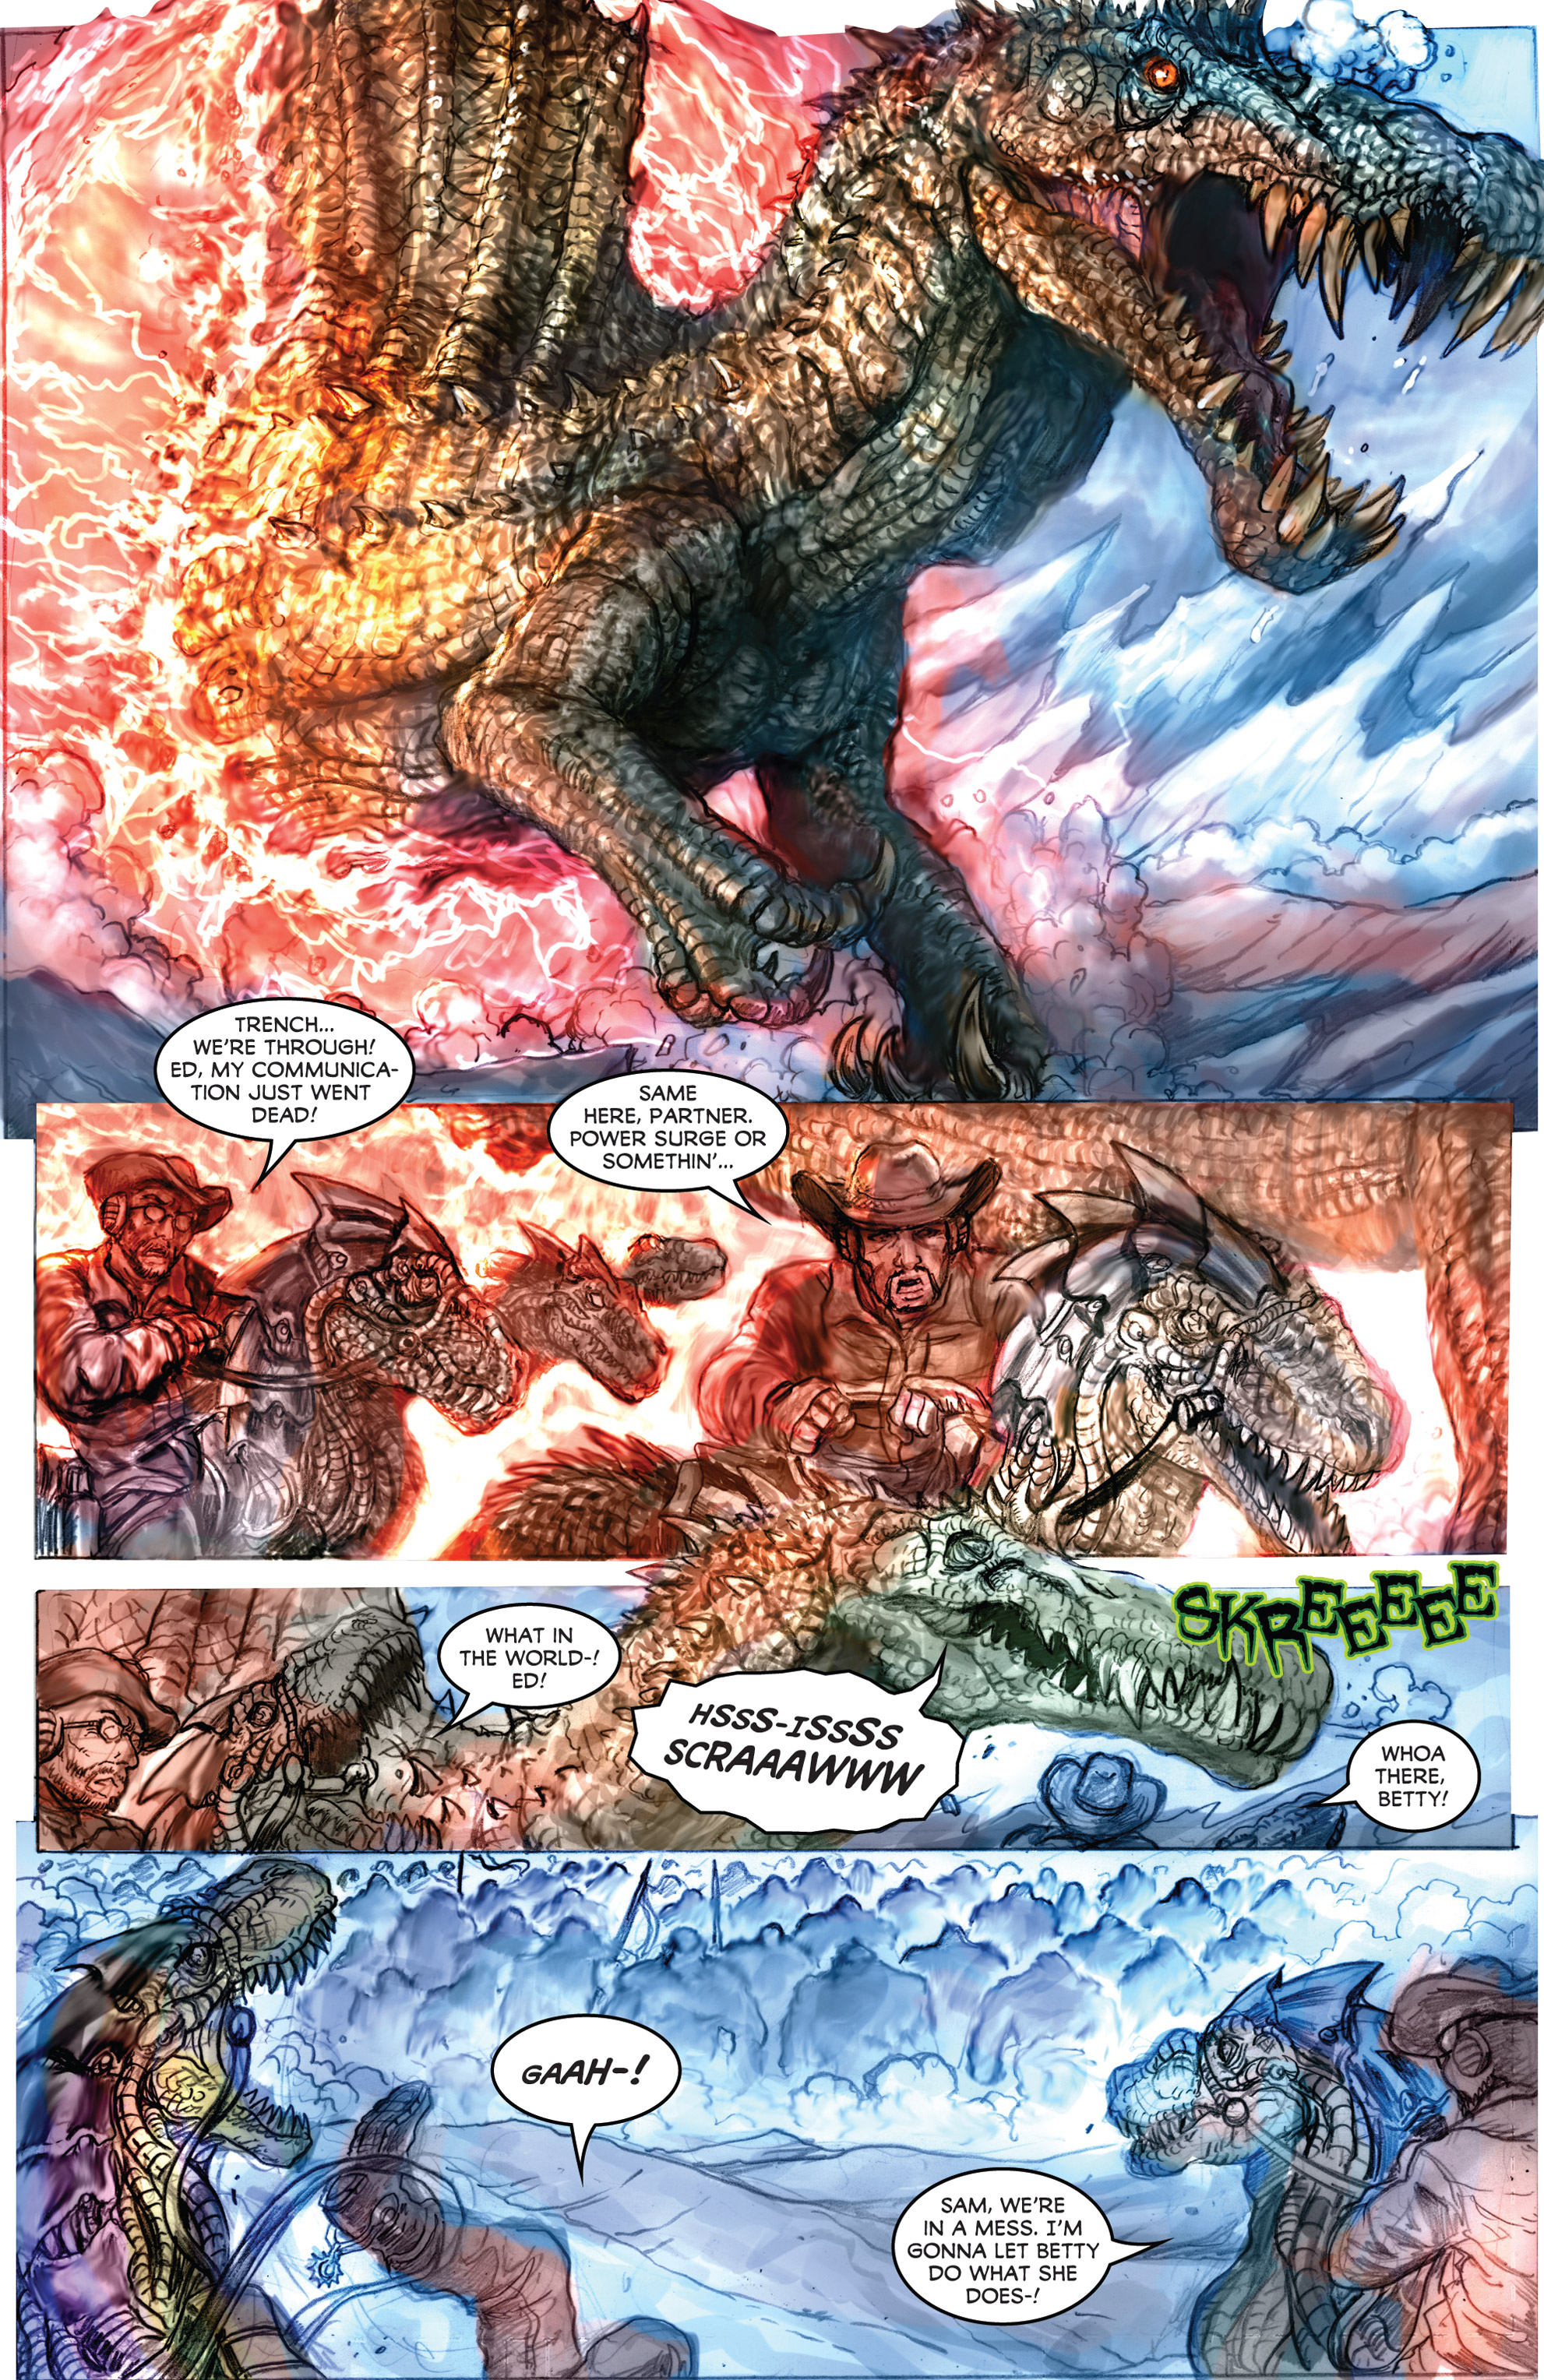 Read online American Mythology Dark: Werewolves vs Dinosaurs comic -  Issue #2 - 13